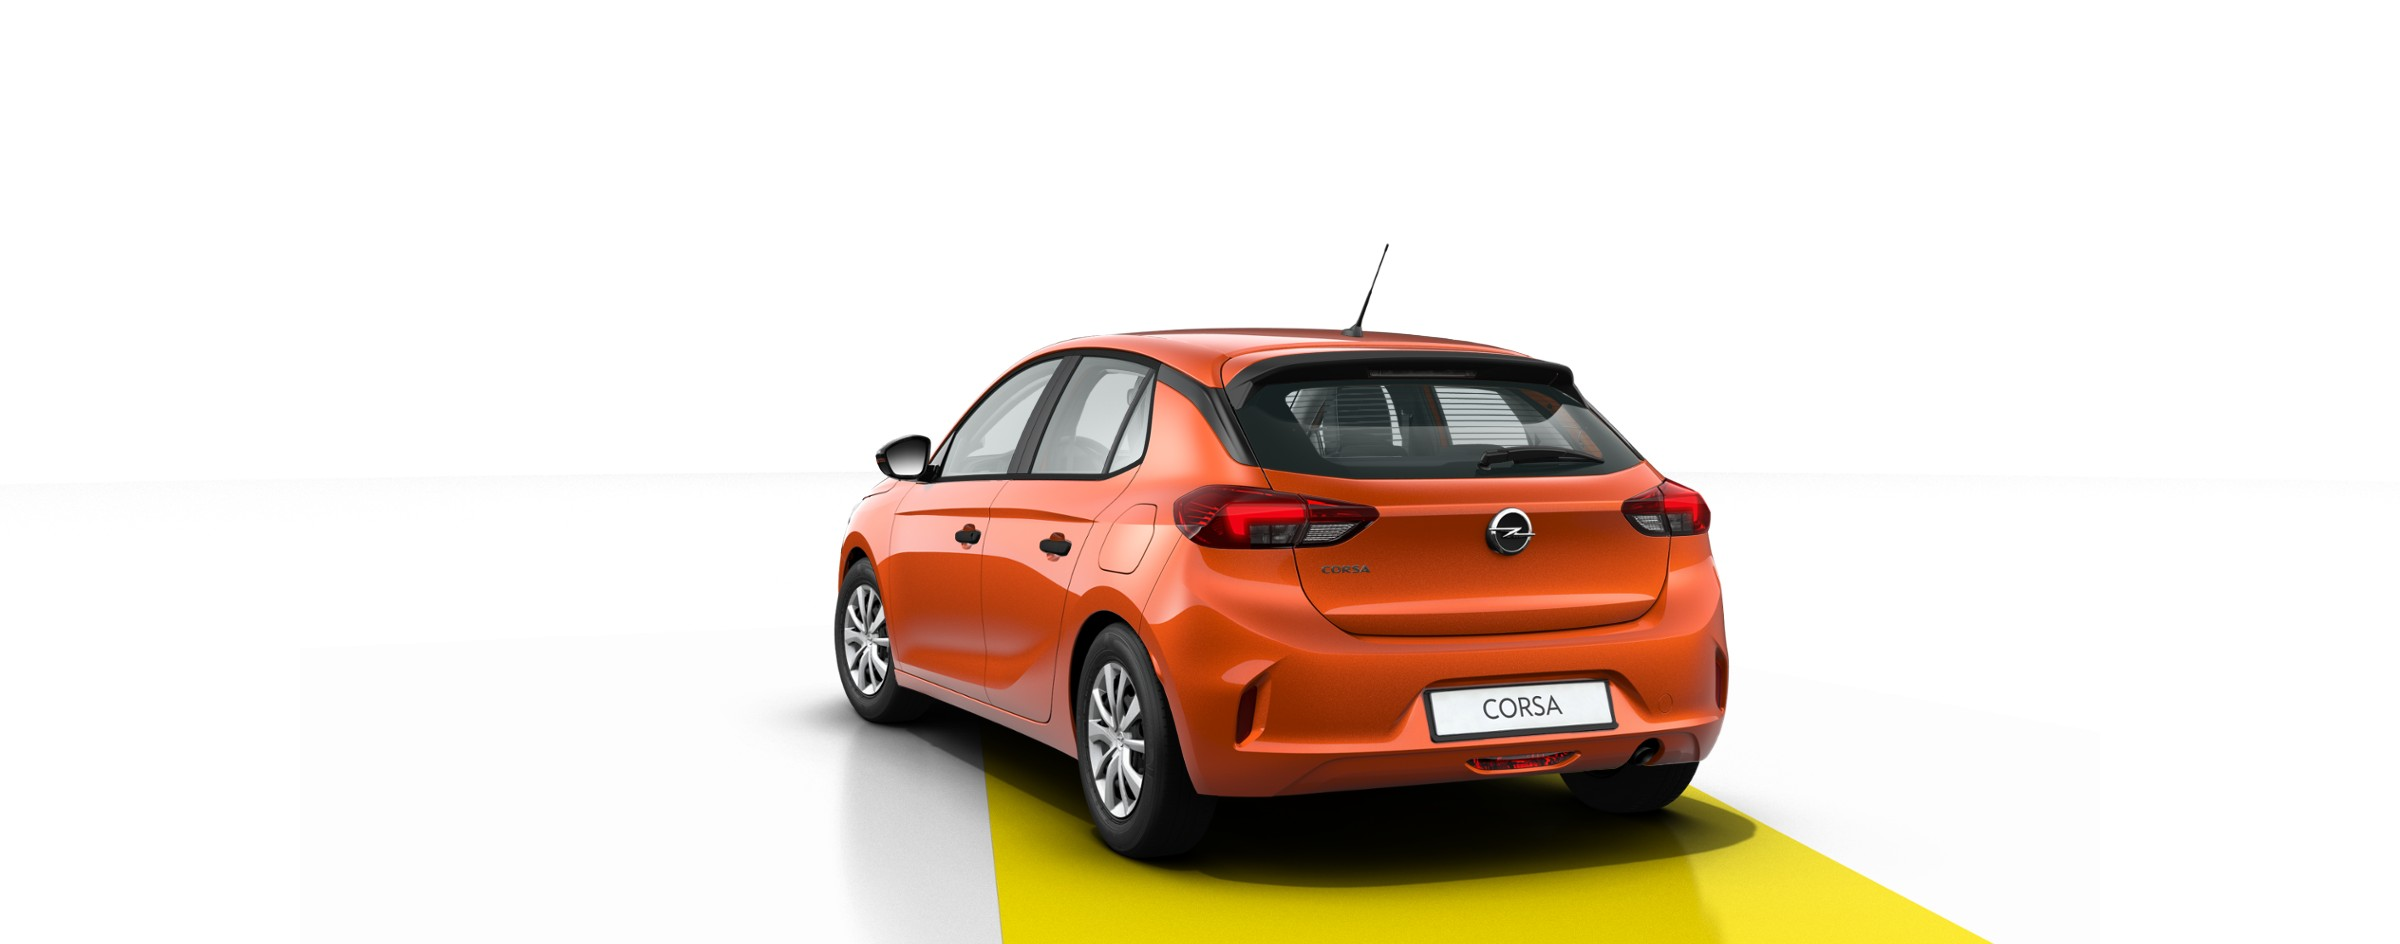 2019 - [Opel] Corsa F [P2JO] - Page 10 4AA_50G_A51_A64_ADD_AKP_AKX_AQP_ATG_BADGE-OPL_BASE_BPILLAR_BRAND-OPL-LHD_C25_C25-FRONT_C25-REAR_C42_C42-LHD_C95_CD4_D31_D31-FRONT_D31-REAR_D55_D75_D75-BLACK-LHD_D81_D91_DLS_DLS-FRONT_DLS-REAR_DP6_DP6-FRONT_DP6-REAR_EXHAUST_FOGLAMP-T79_FWD_GLASS-FRONT-LHD_GLASS-REARv01_GPQ-FRONTBUMPER_GPQ-FULLROOF_GPQ-PAINT_GPQ-REARBUMPER_GRILLE-TL6_GROUNDSHADOW_H1T_HEATINGWIRE-FRONT_HEATINGWIRE-REAR_IMA_IMA-LHD_IO7_IO7-LHD_JQ4_K34_K34-LHD_LHD_M0E-LHD_MDB_N37_N37-LHD_N54_N54-LHD_NAMEPLATE-OPL_OLD_PRIMER-TRUNK-FRONT_PRIMER-TRUNK-REAR_REARBADGE_RRL_RRL-OPL_S251_S900_SNTO_SPOILER-D81-PLASTIC_T4A_T4A-ON_T79_TAVE-A51-SEATLEFT-LHD_TAVE-A51-SEATRIGHT-LHD_TAVE-AQP-LHD_TAVE-LHD_TIRE15_TL6_TR1_TR1-ON_TS6_U91_UC3_UC3-LHD_UDD_UHH_UHY_UJO_UVX_UW4_VEE_W5T_WIPER-LHD_WLZngstdzoom.jpg&std=true&country=DE&brand=opel&channel=b2c&phase=phase3bng&quality=0